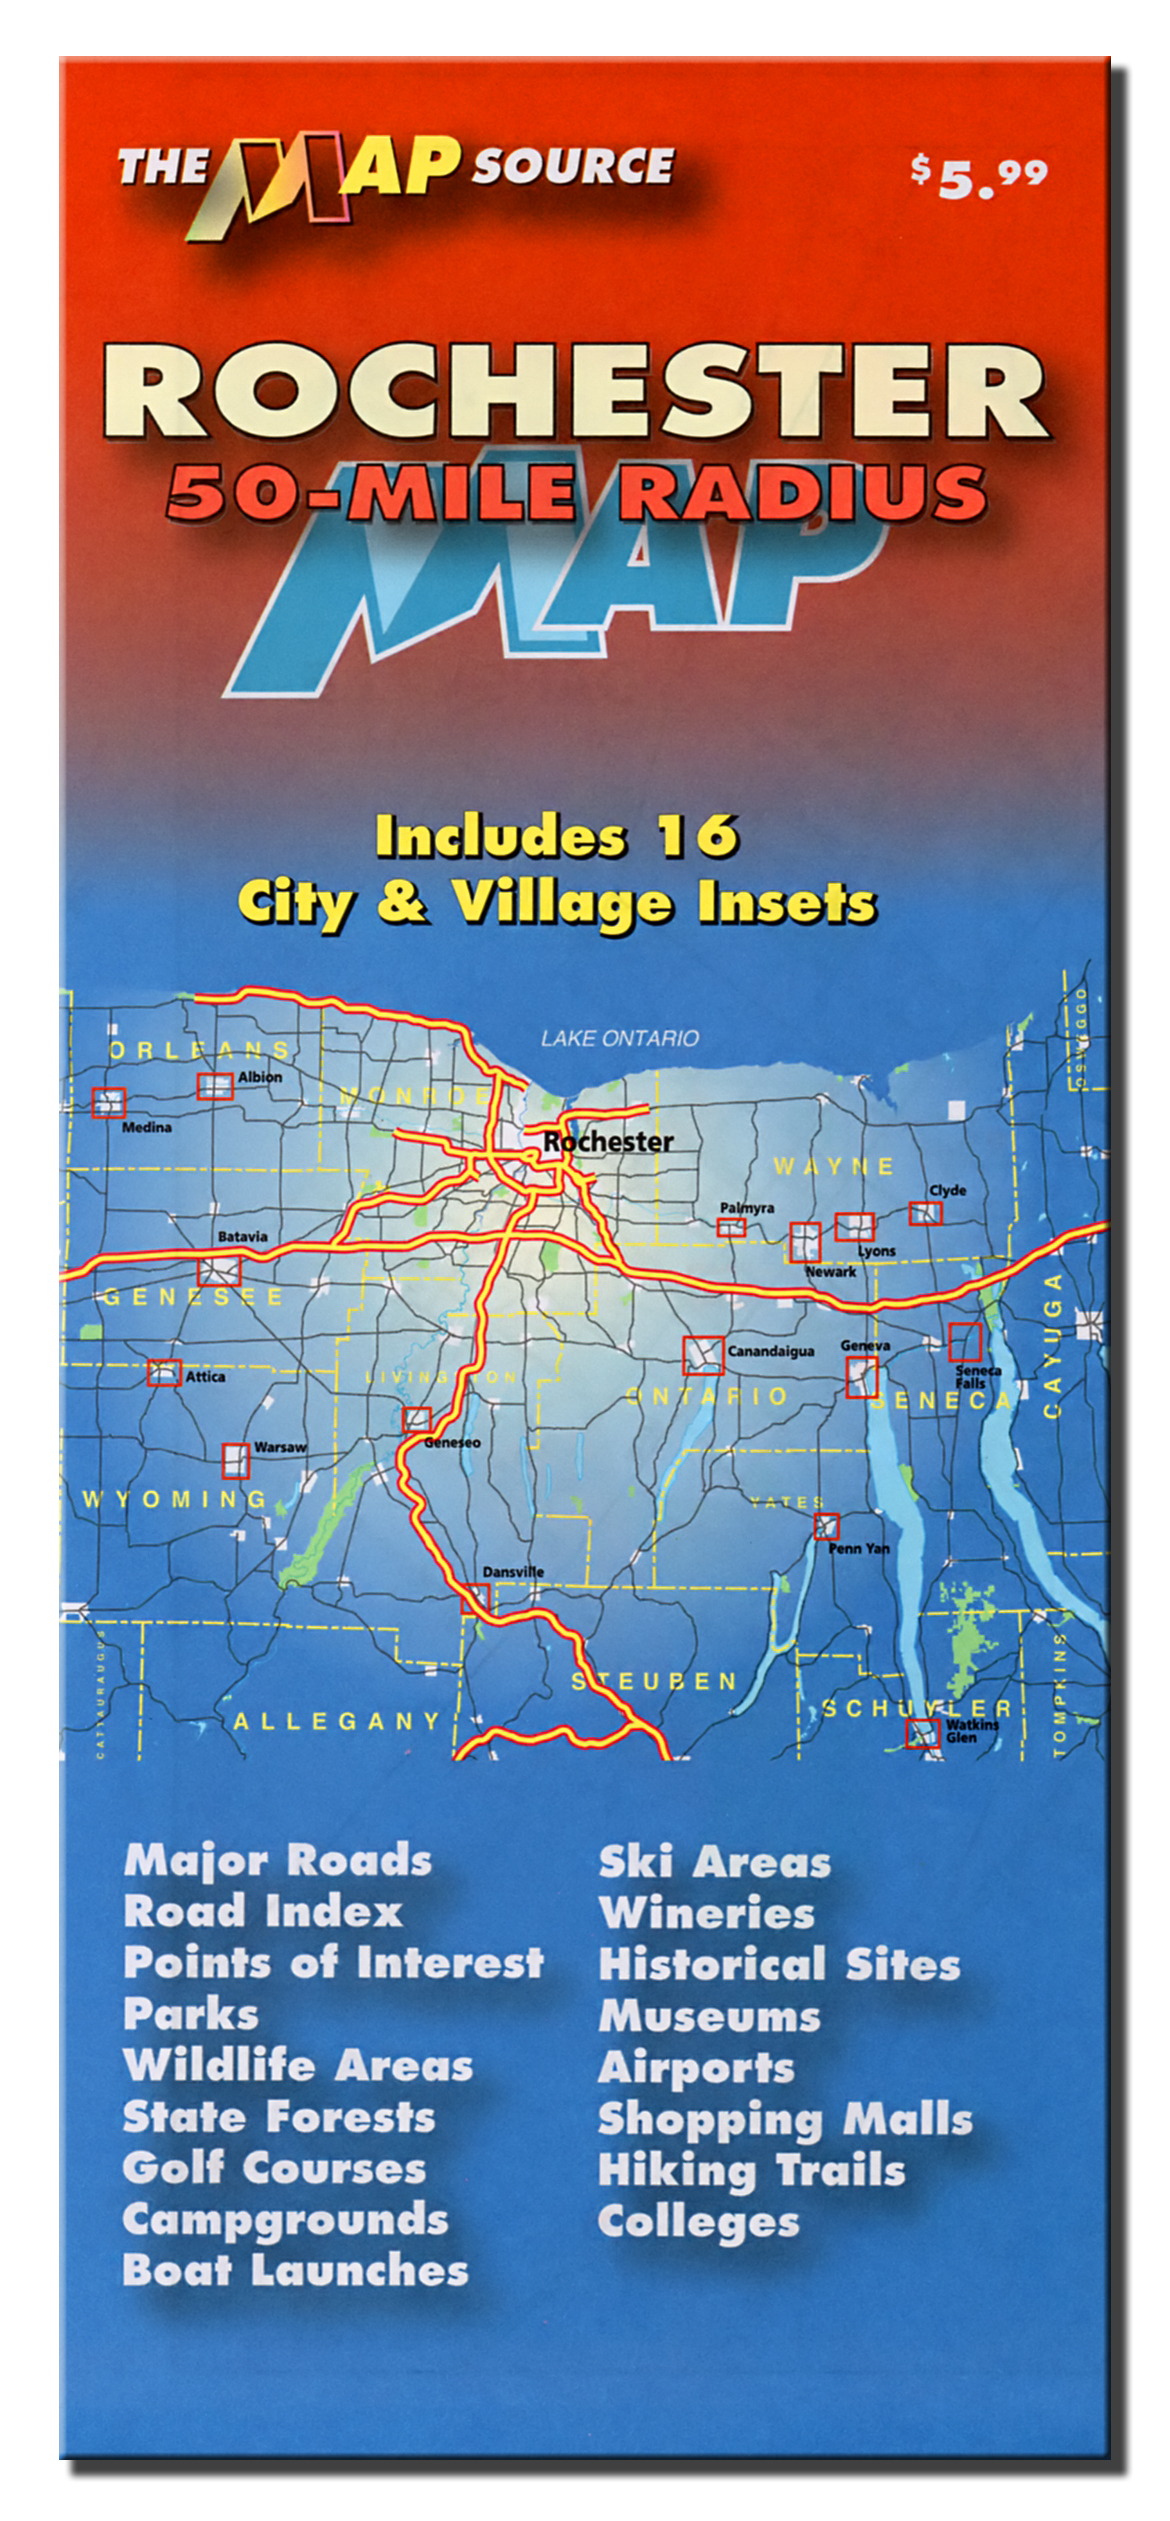 Rochester New York 50-mile radius – The Map Source on